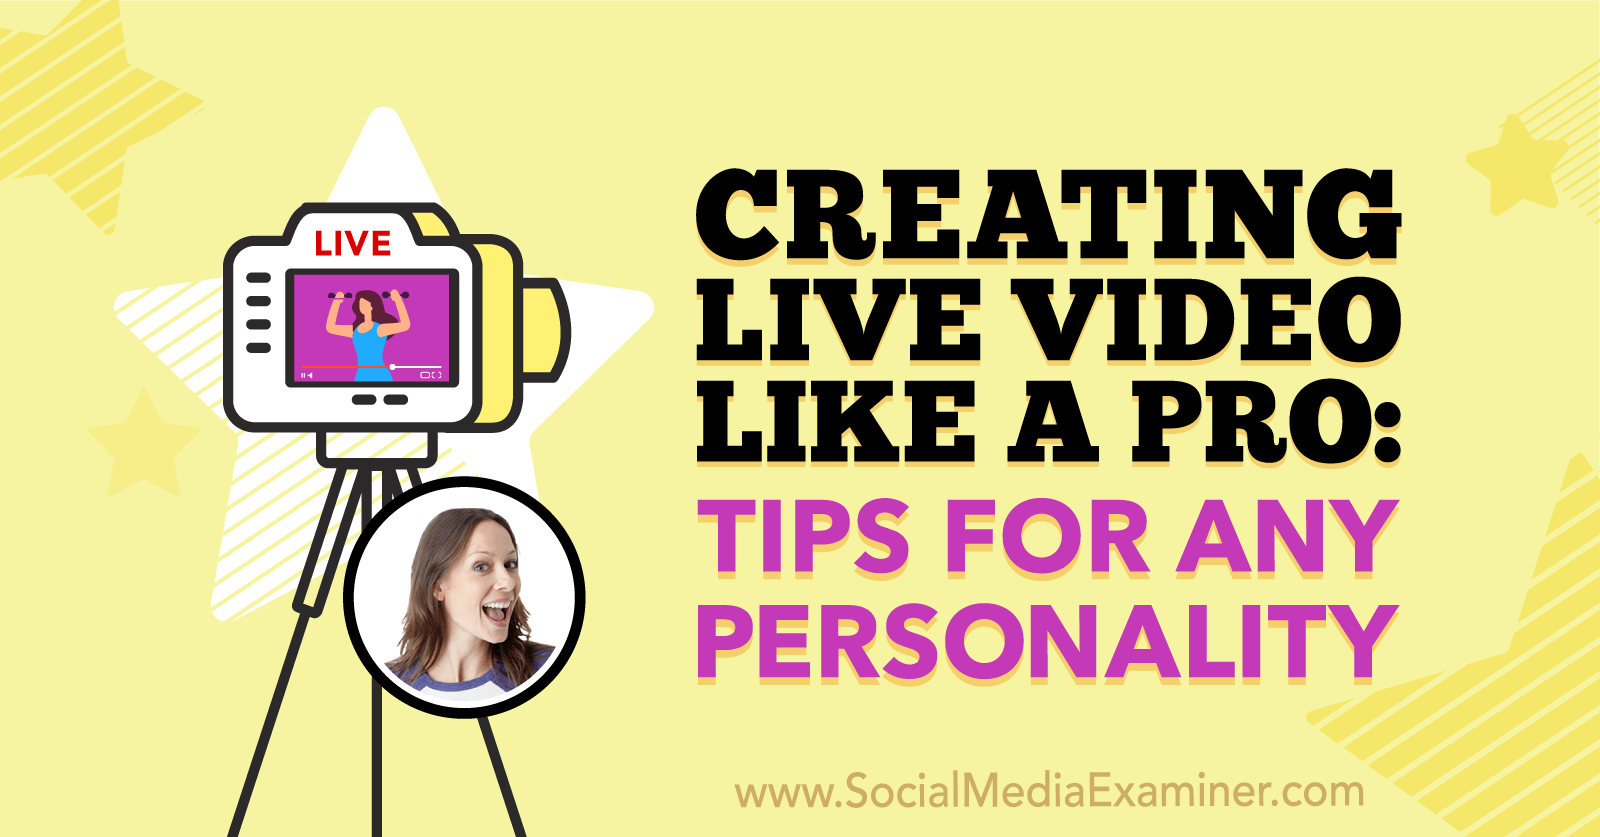 Creating Live Video Like a Pro: Tips for Any Personality featuring insights from Luria Petrucci on the Social Media Marketing Podcast.